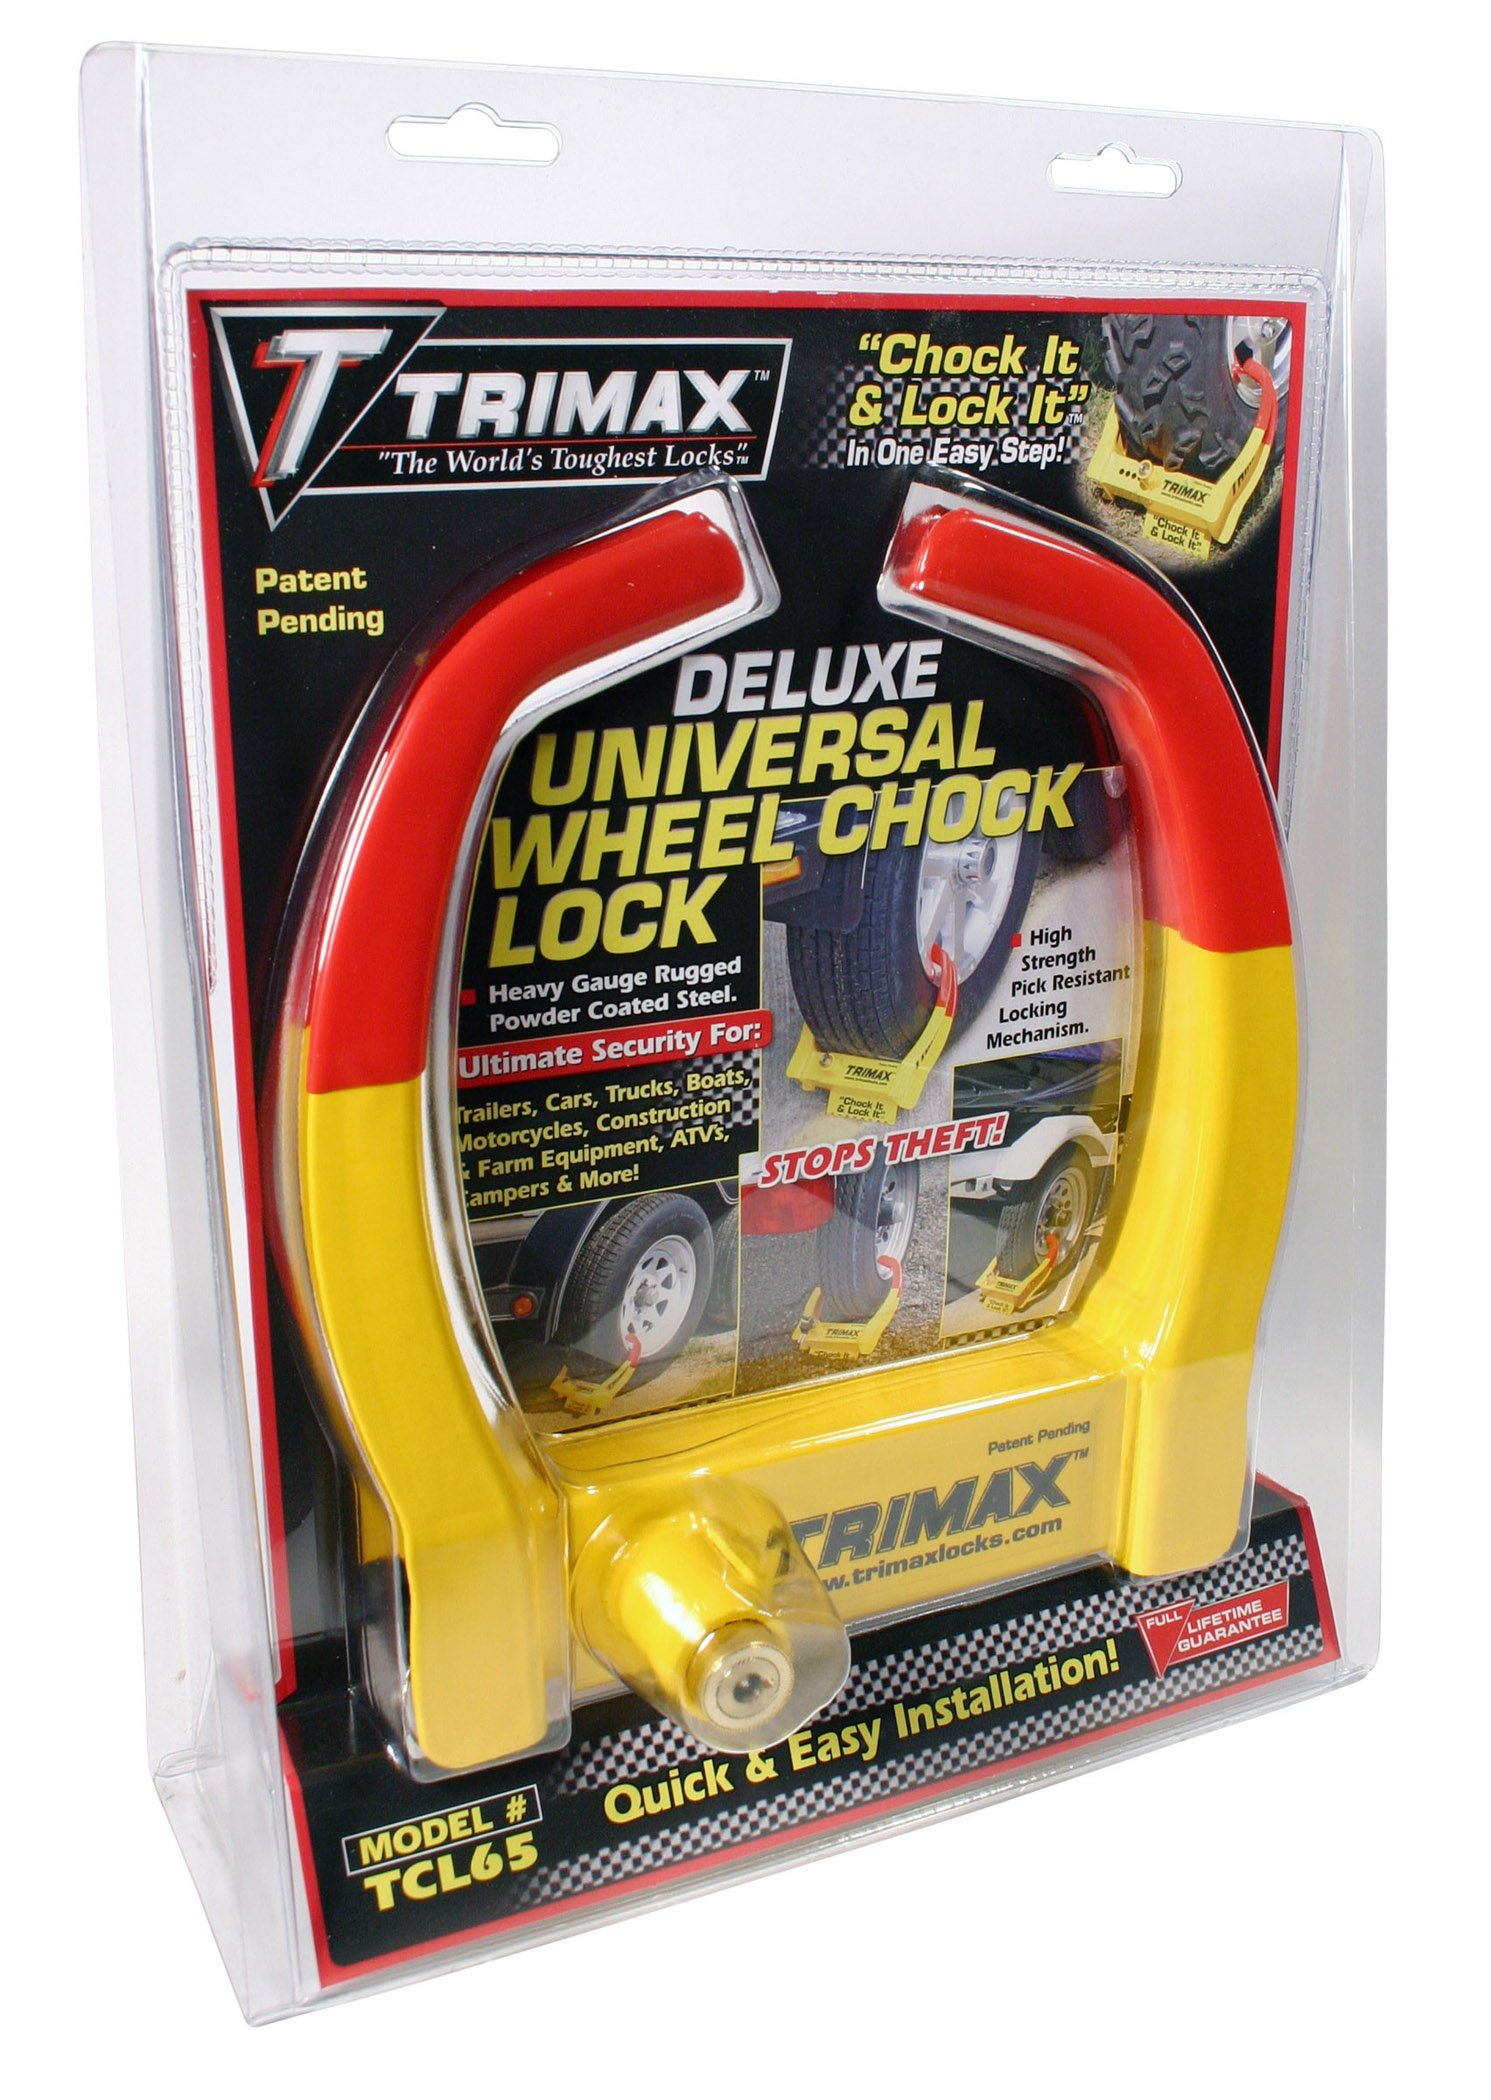 Trimax TCL265 Small Deluxe Keyed Alike Wheel Chock Lock, (Pack of 2) by Trimax (Image #2)